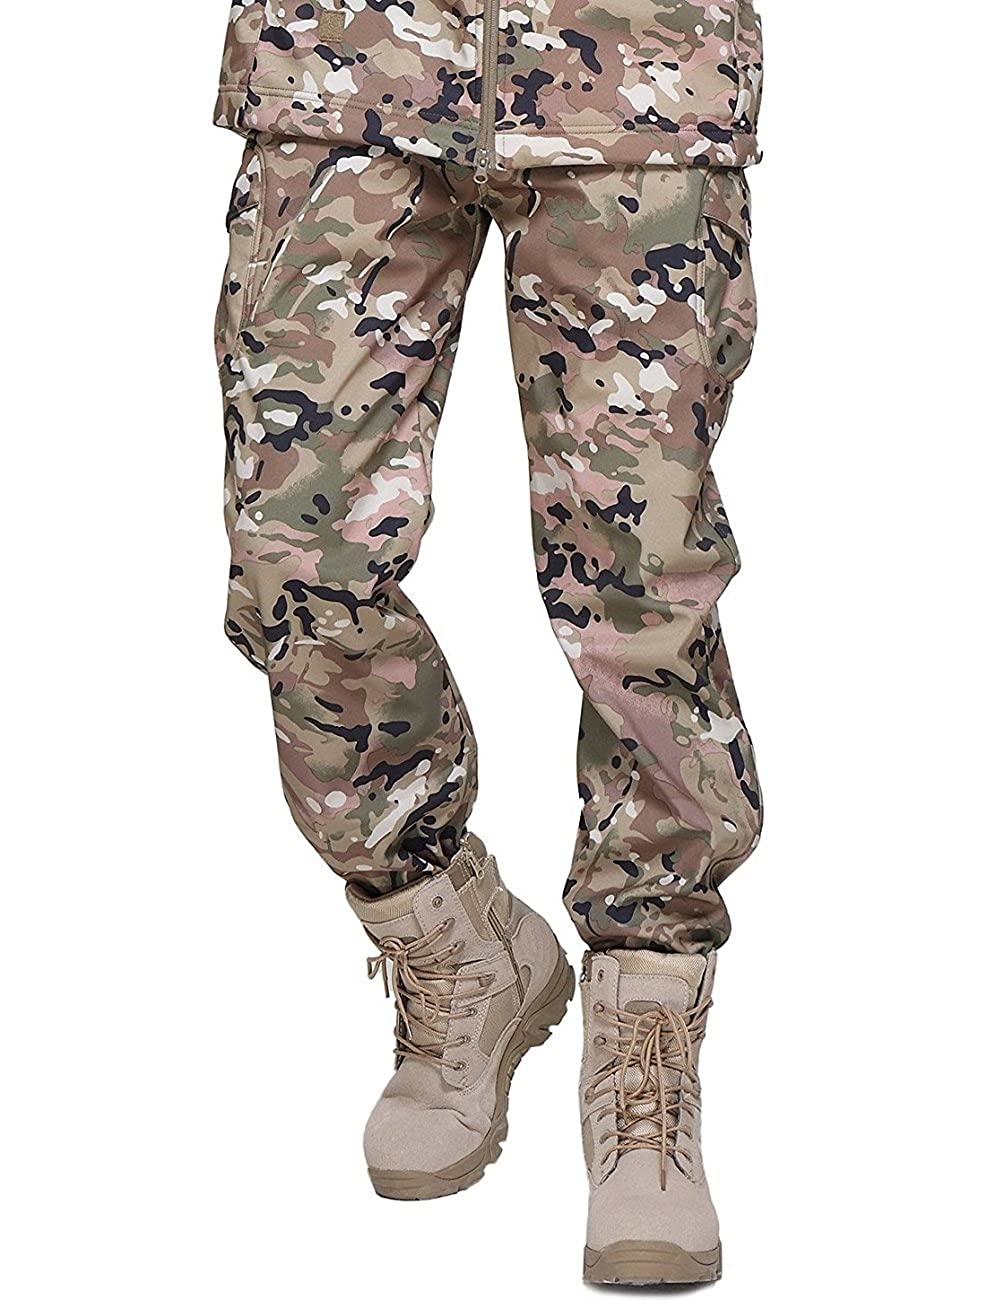 YFNT Men's Tactical Military Camping Hiking Soft Shell Fleece Camouflage Pants L02RCFK-P